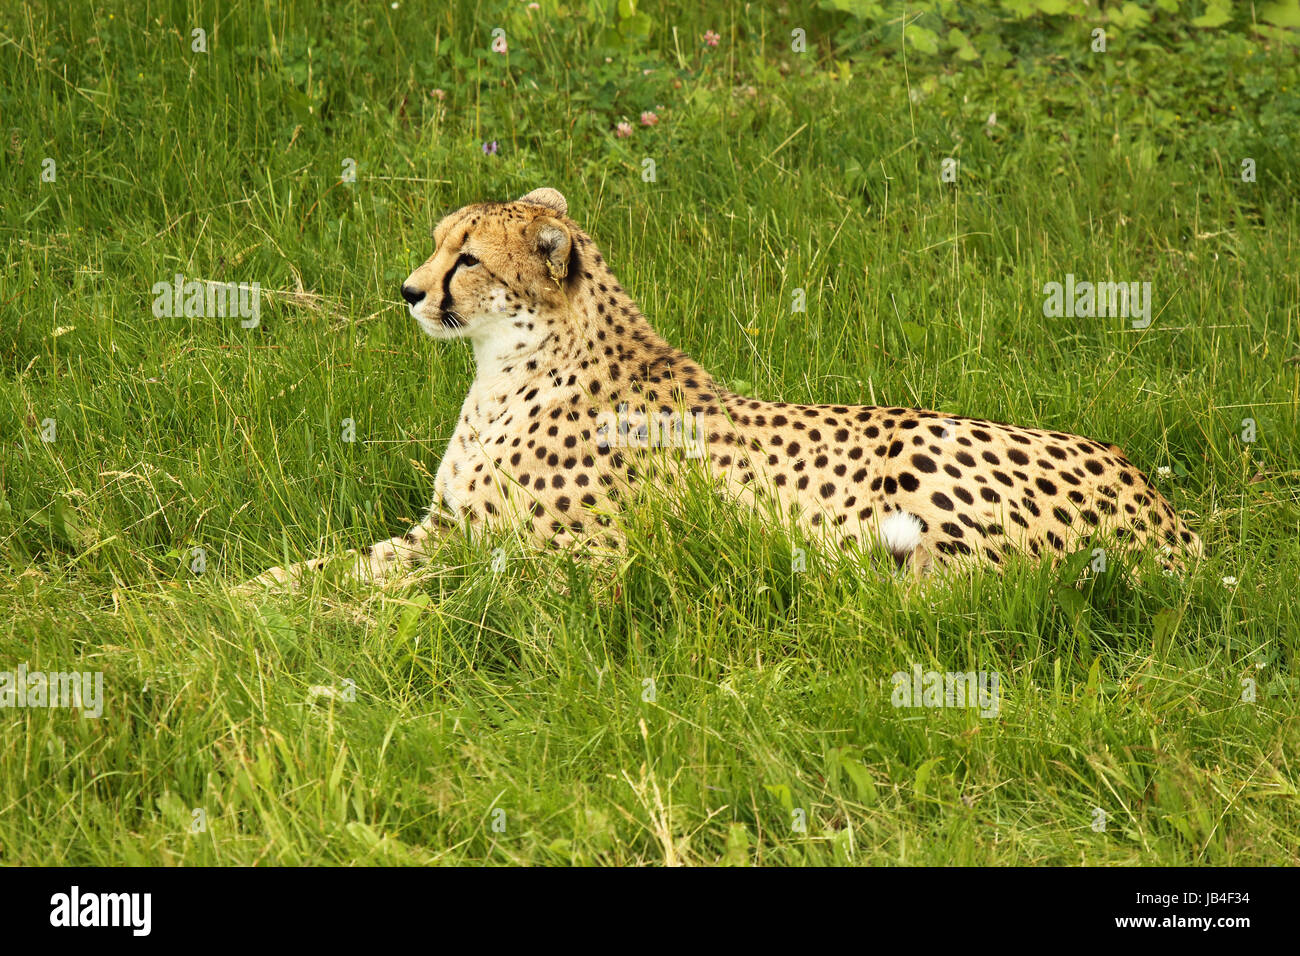 A Cheetah perked up while resting in a grassland. - Stock Image